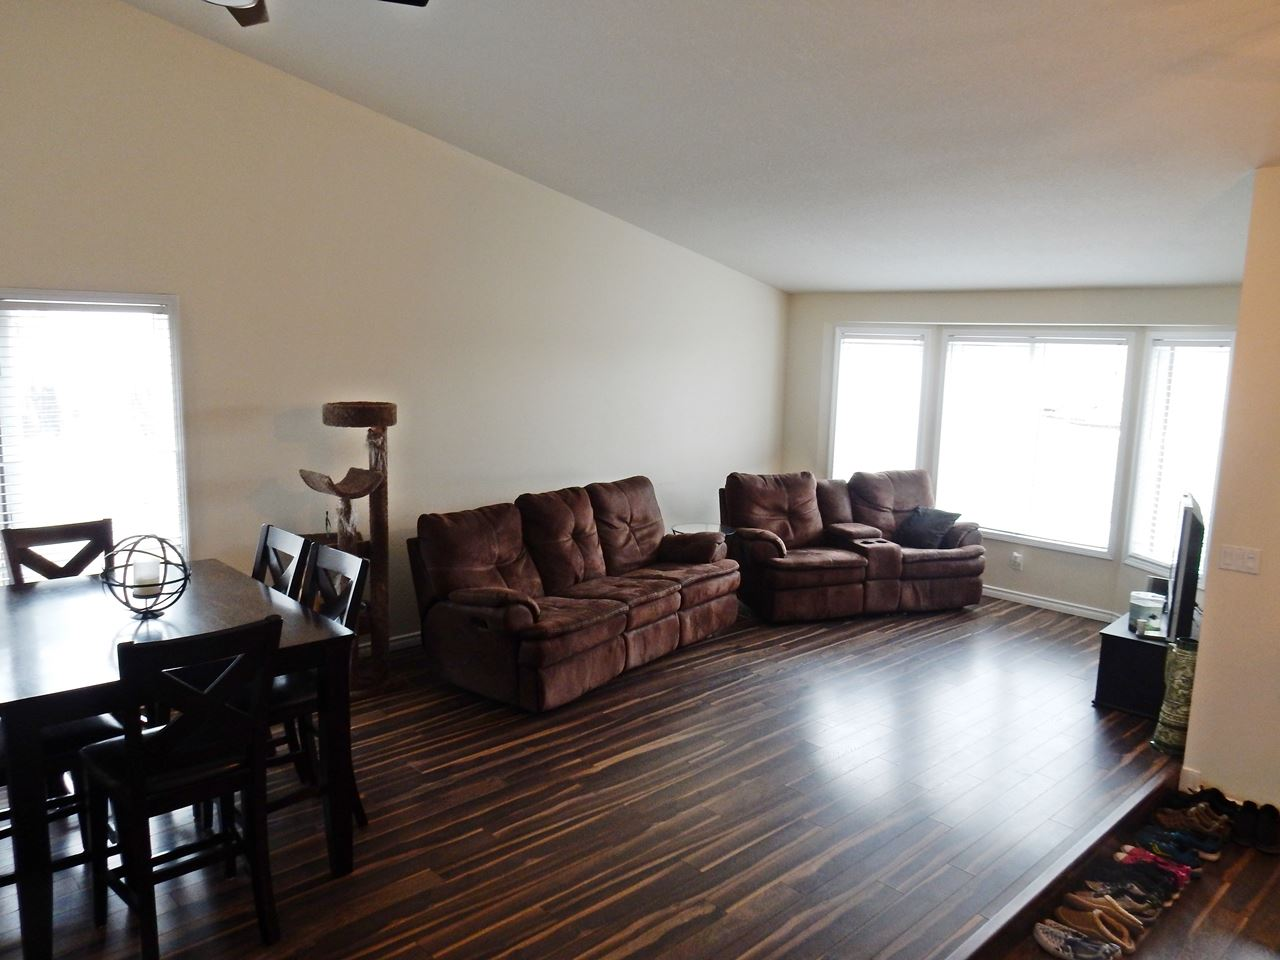 Photo 5: 74, 56019 Rge Rd 230: Rural Sturgeon County House for sale : MLS(r) # E4057244